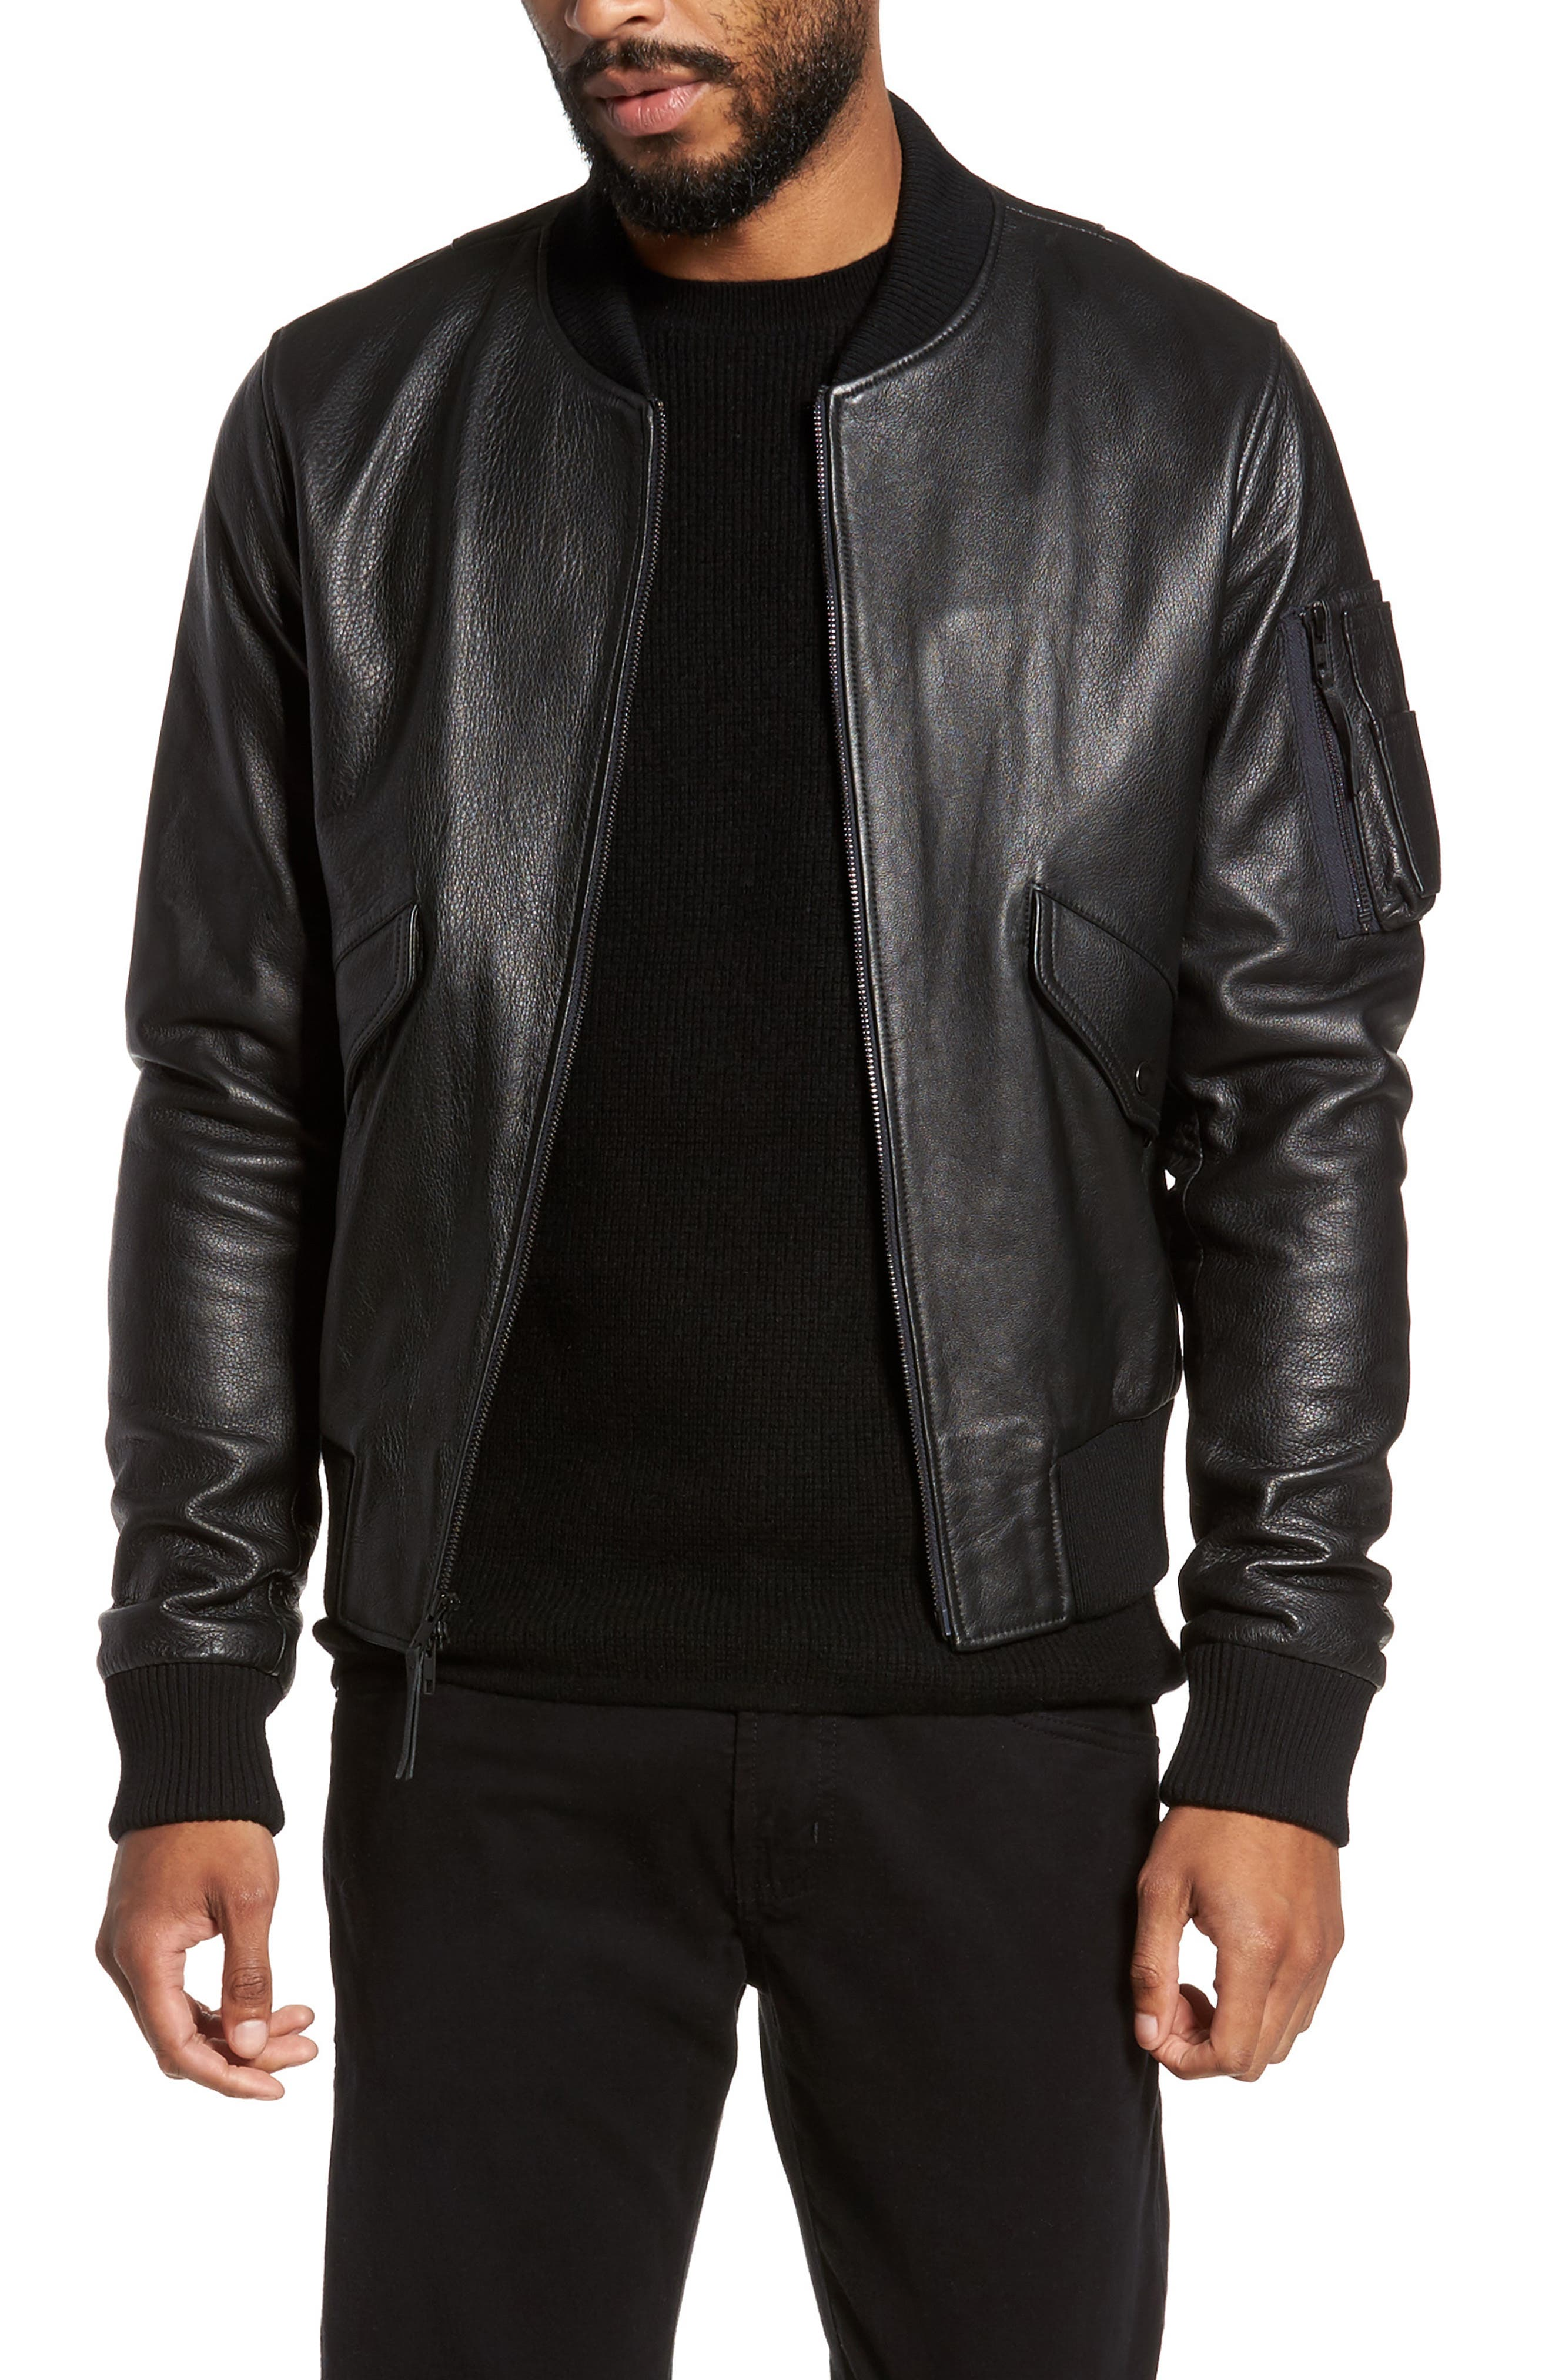 Lambskin Bomber Jacket,                             Main thumbnail 1, color,                             001